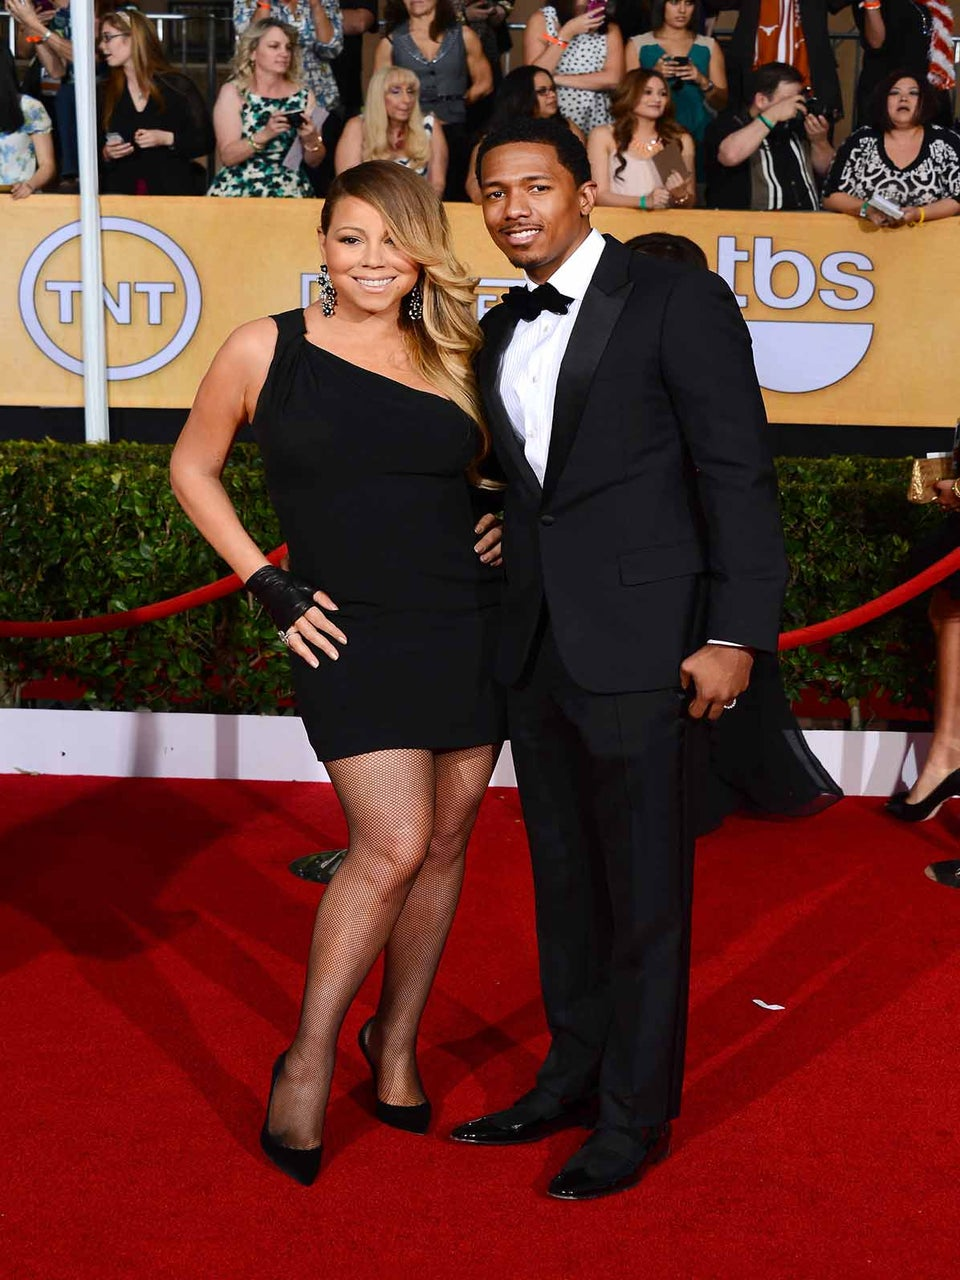 Mariah Carey & Nick Cannon List Their Bel Air Home for Nearly $3 Million